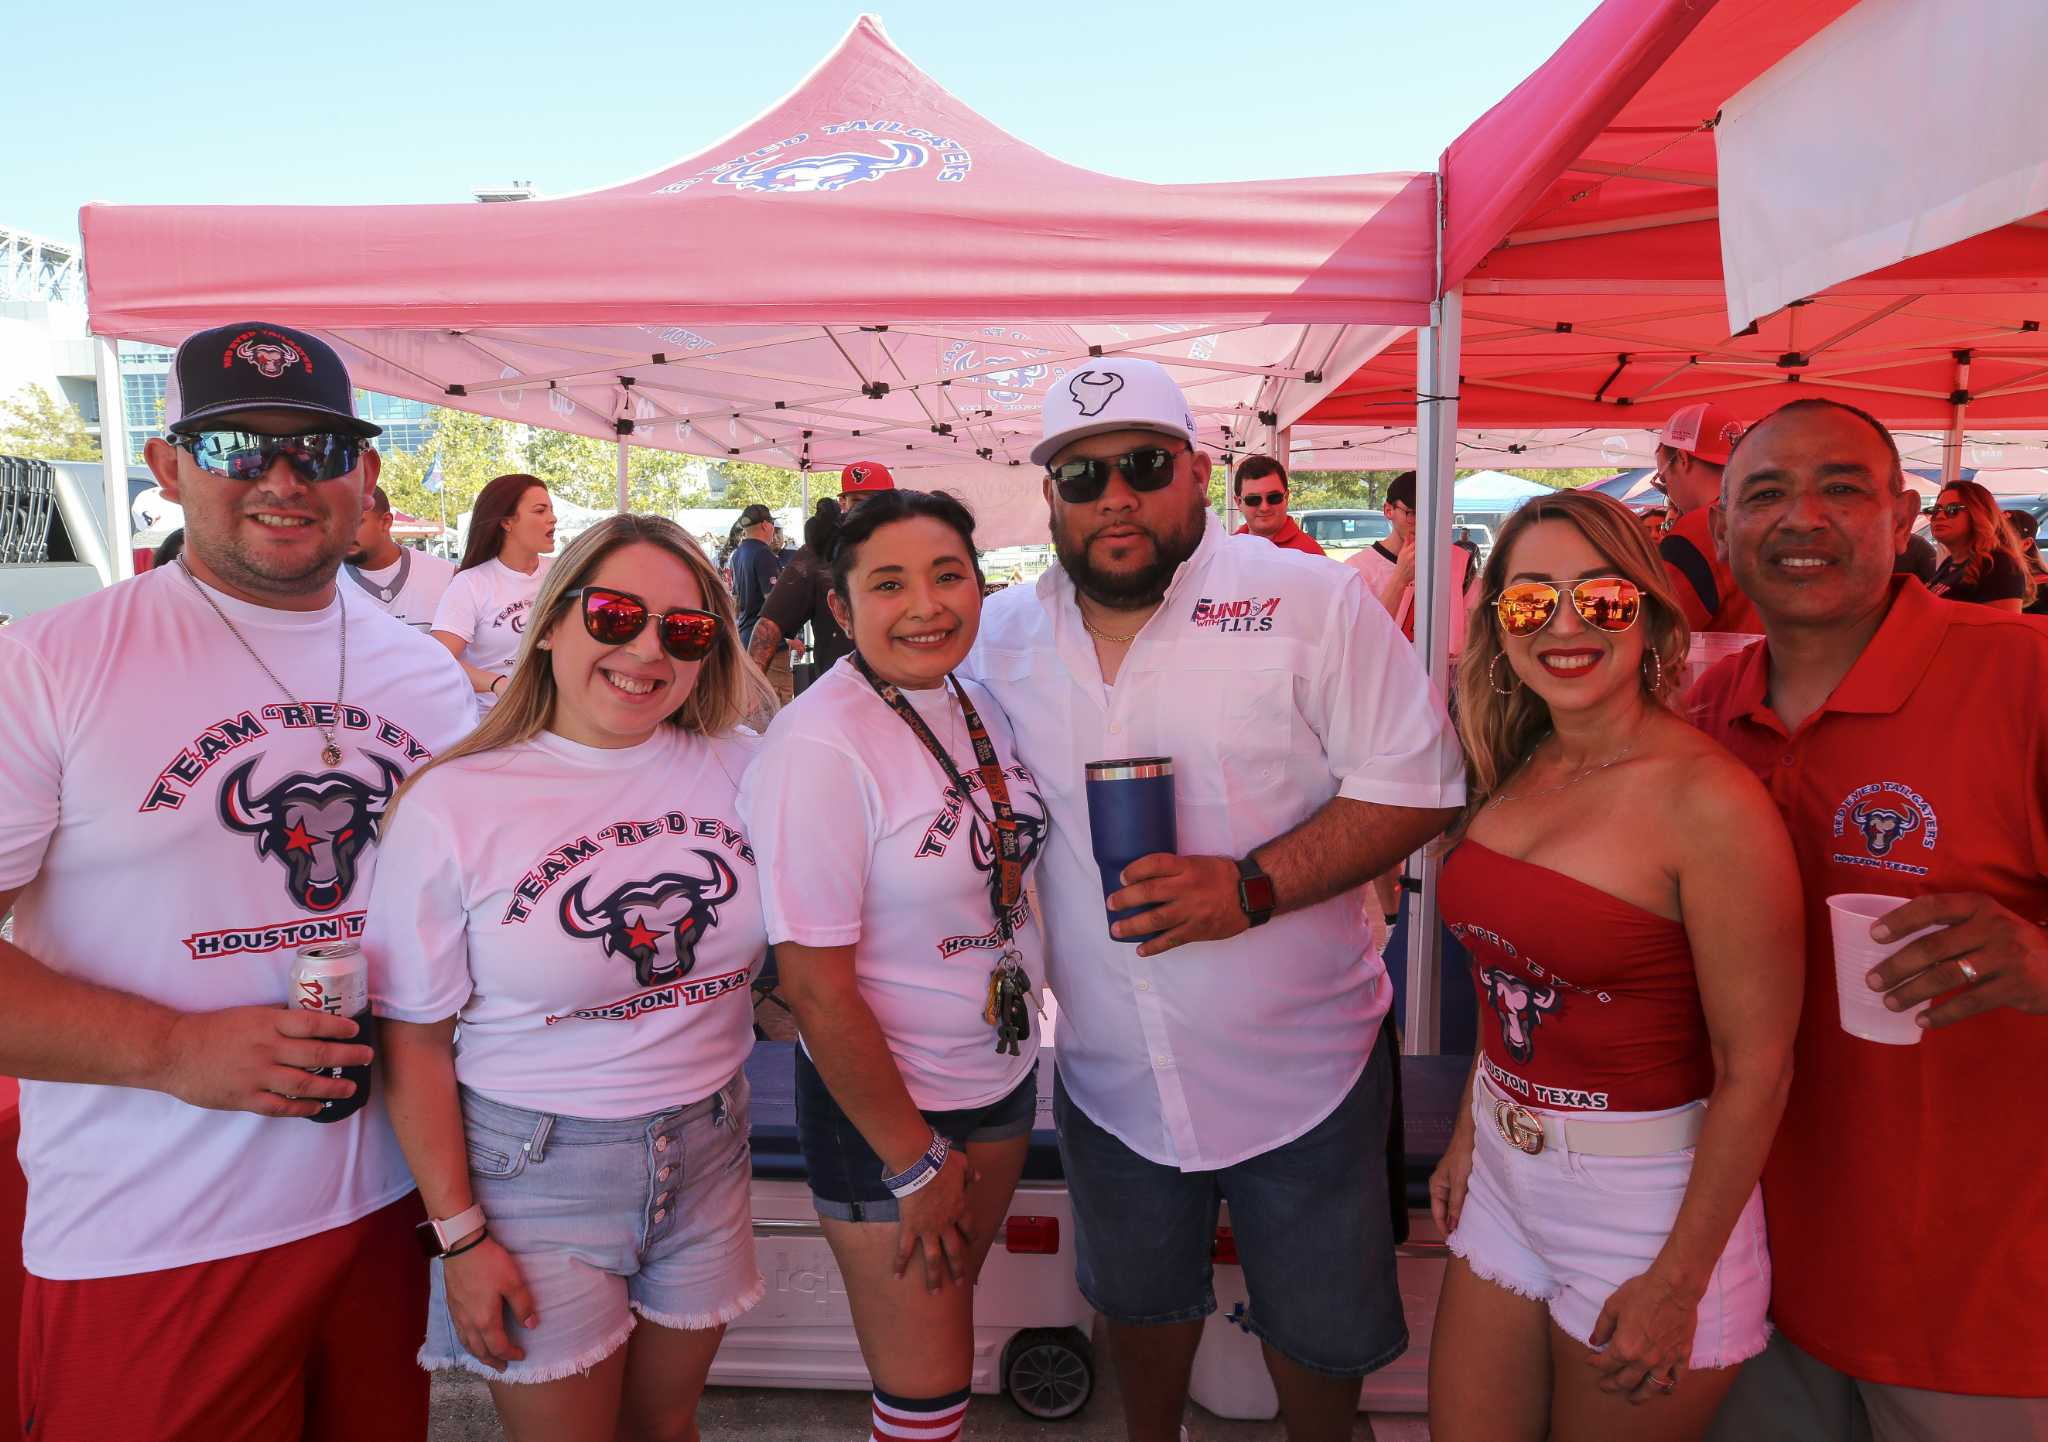 Texans tailgating fans celebrate home opener at NRG Stadium